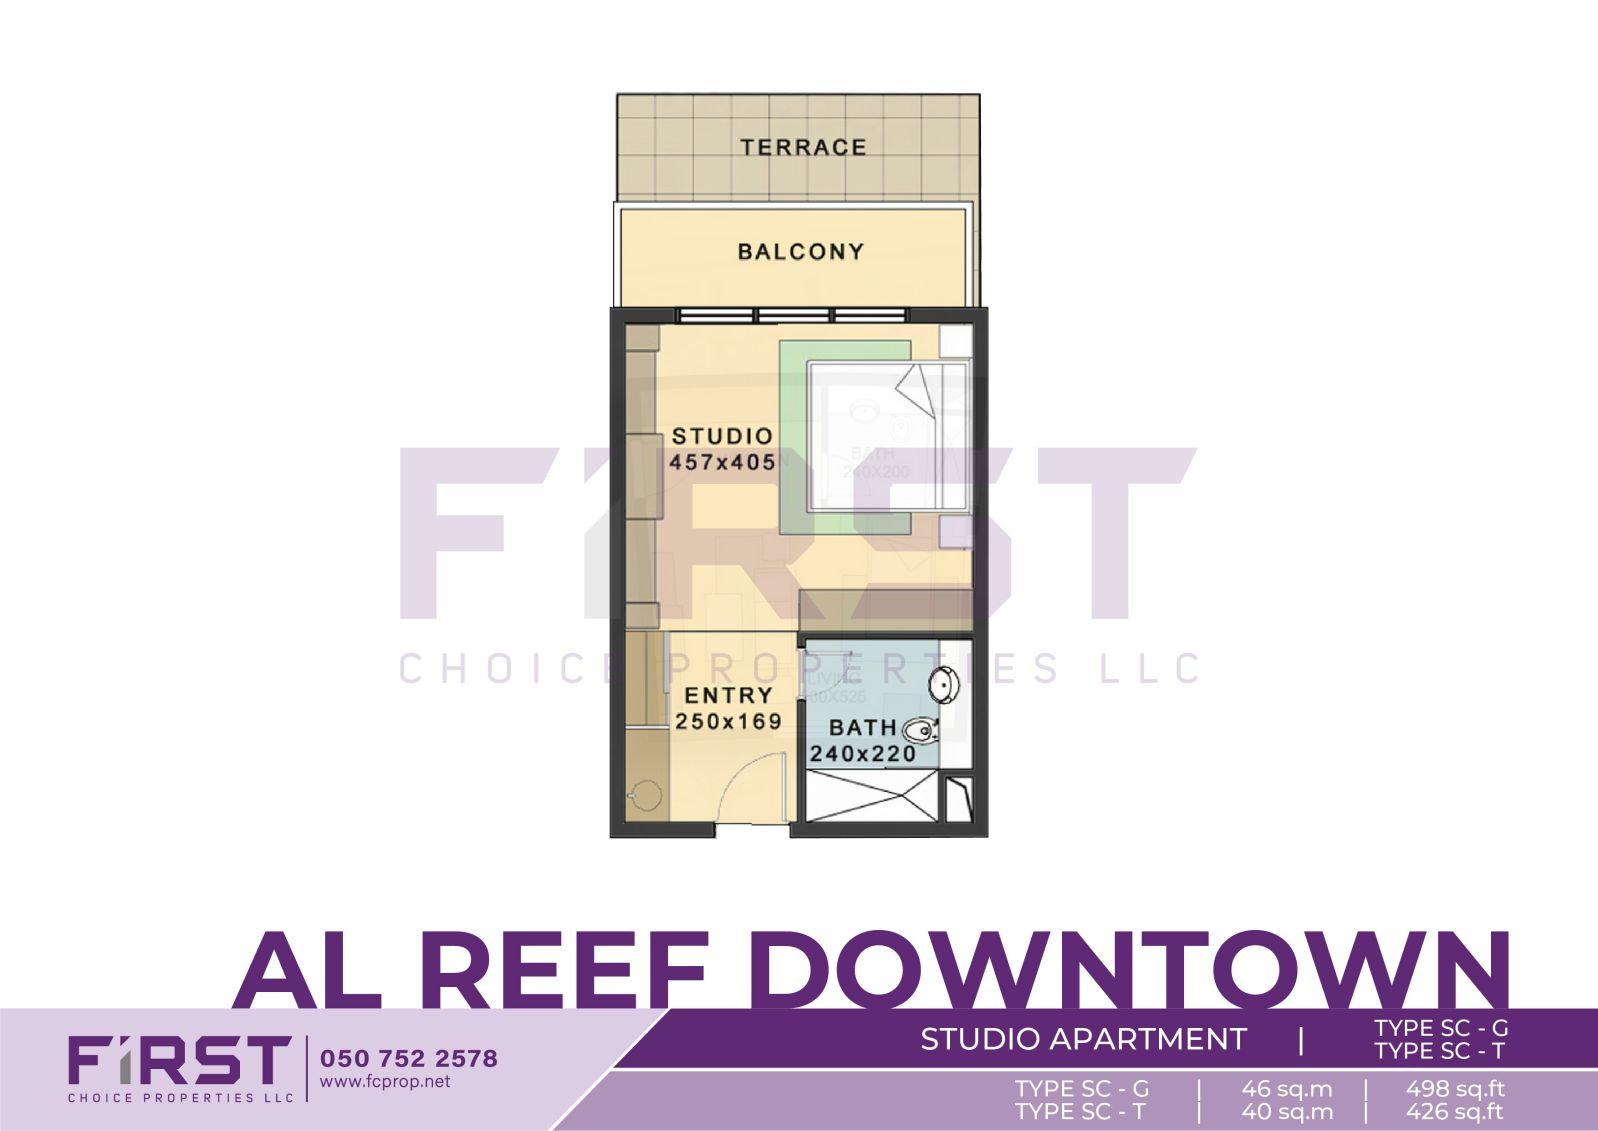 Floor Plan of Studio Apartment TYPE SC-G in Al Reef Downtown Al Reef Abu Dhabi UAE 46 sq.m 498 sq.ft T 40 sq.m 426 sq.ft.jpg